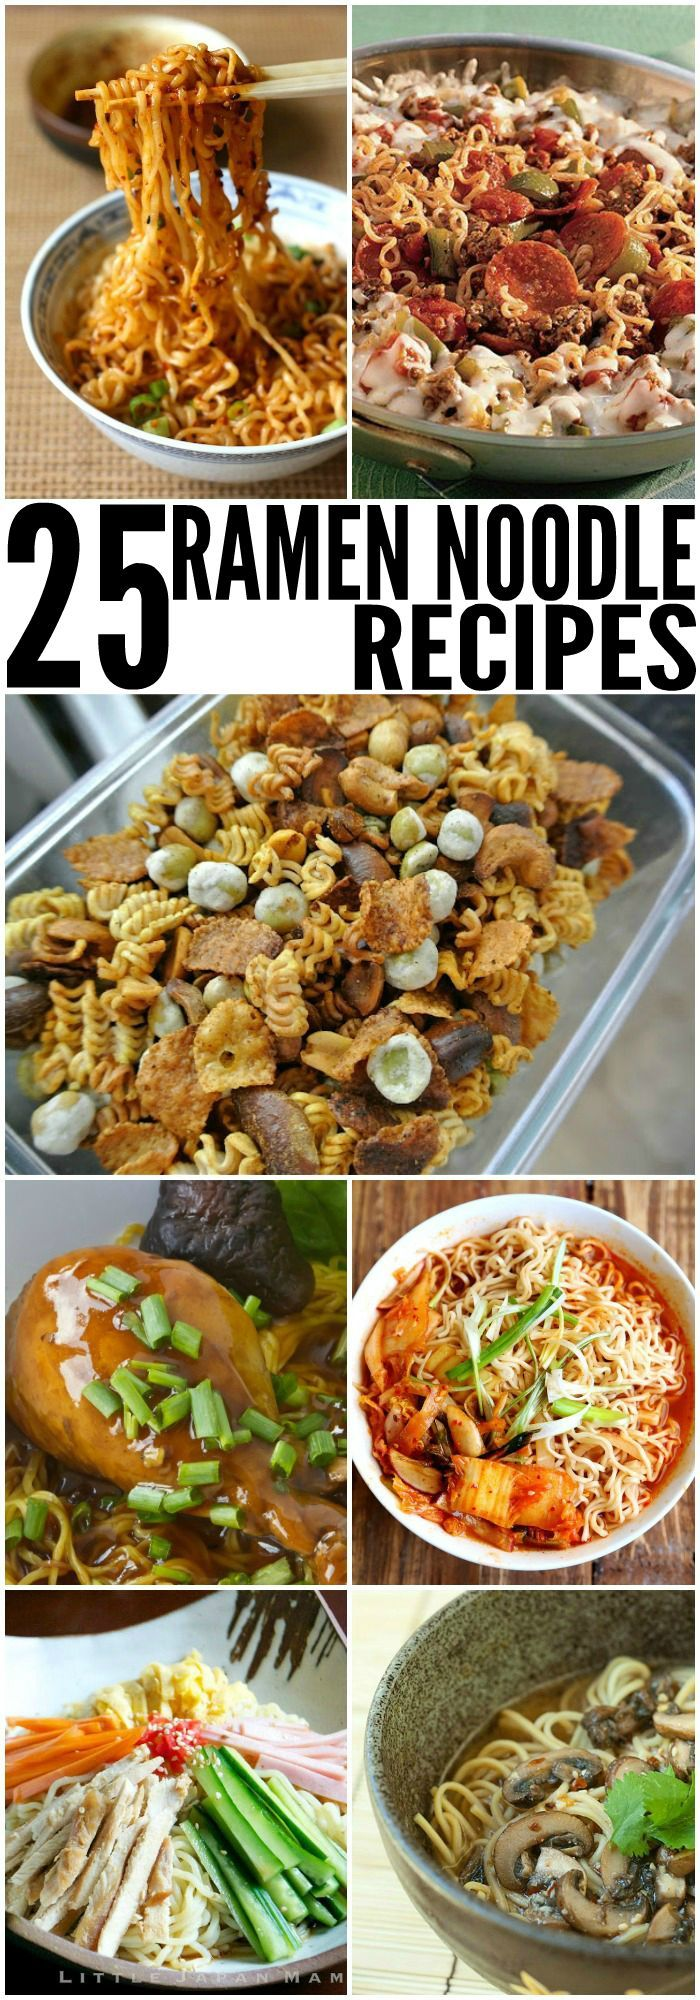 25 Ramen Noodle Recipes. So yummy! Ramen is what's for dinner!